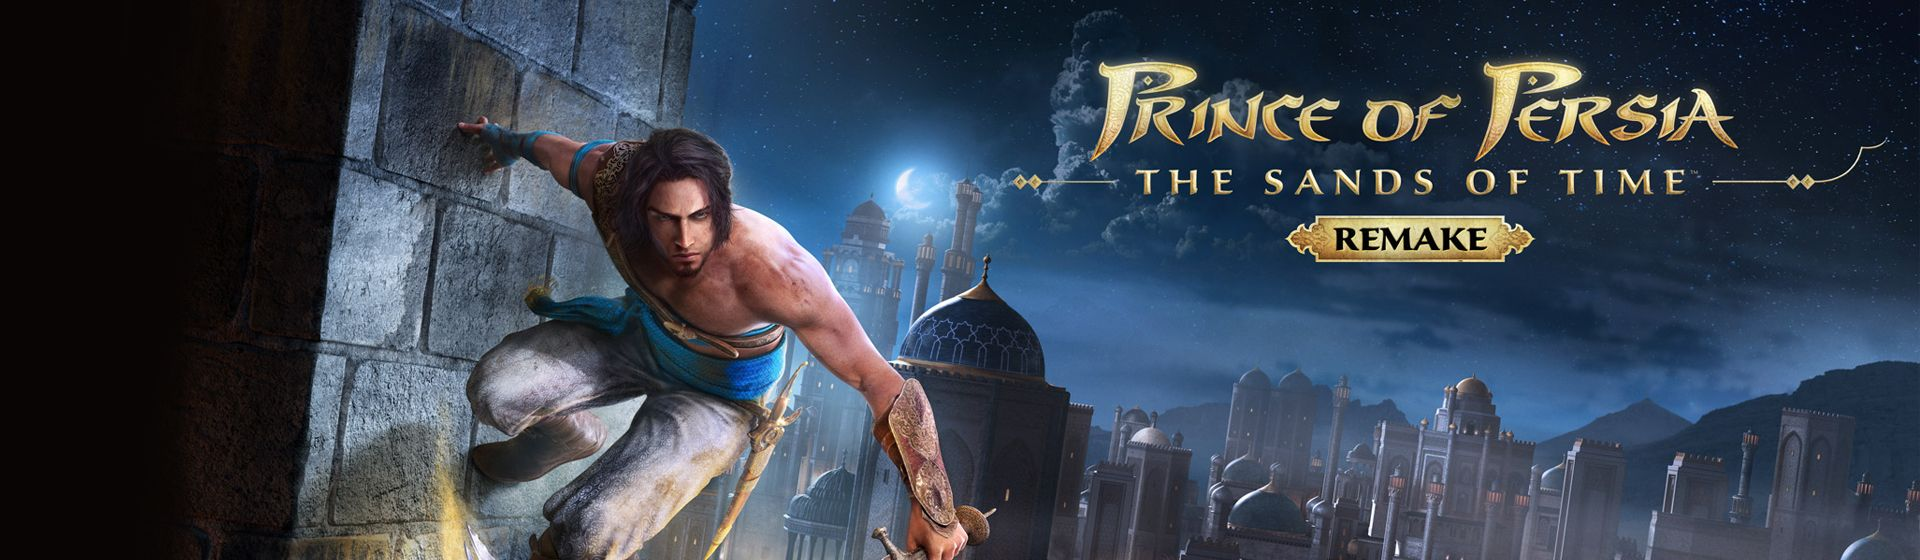 Prince of Persia: The Sands of Time Remake: veja lançamento e trailer